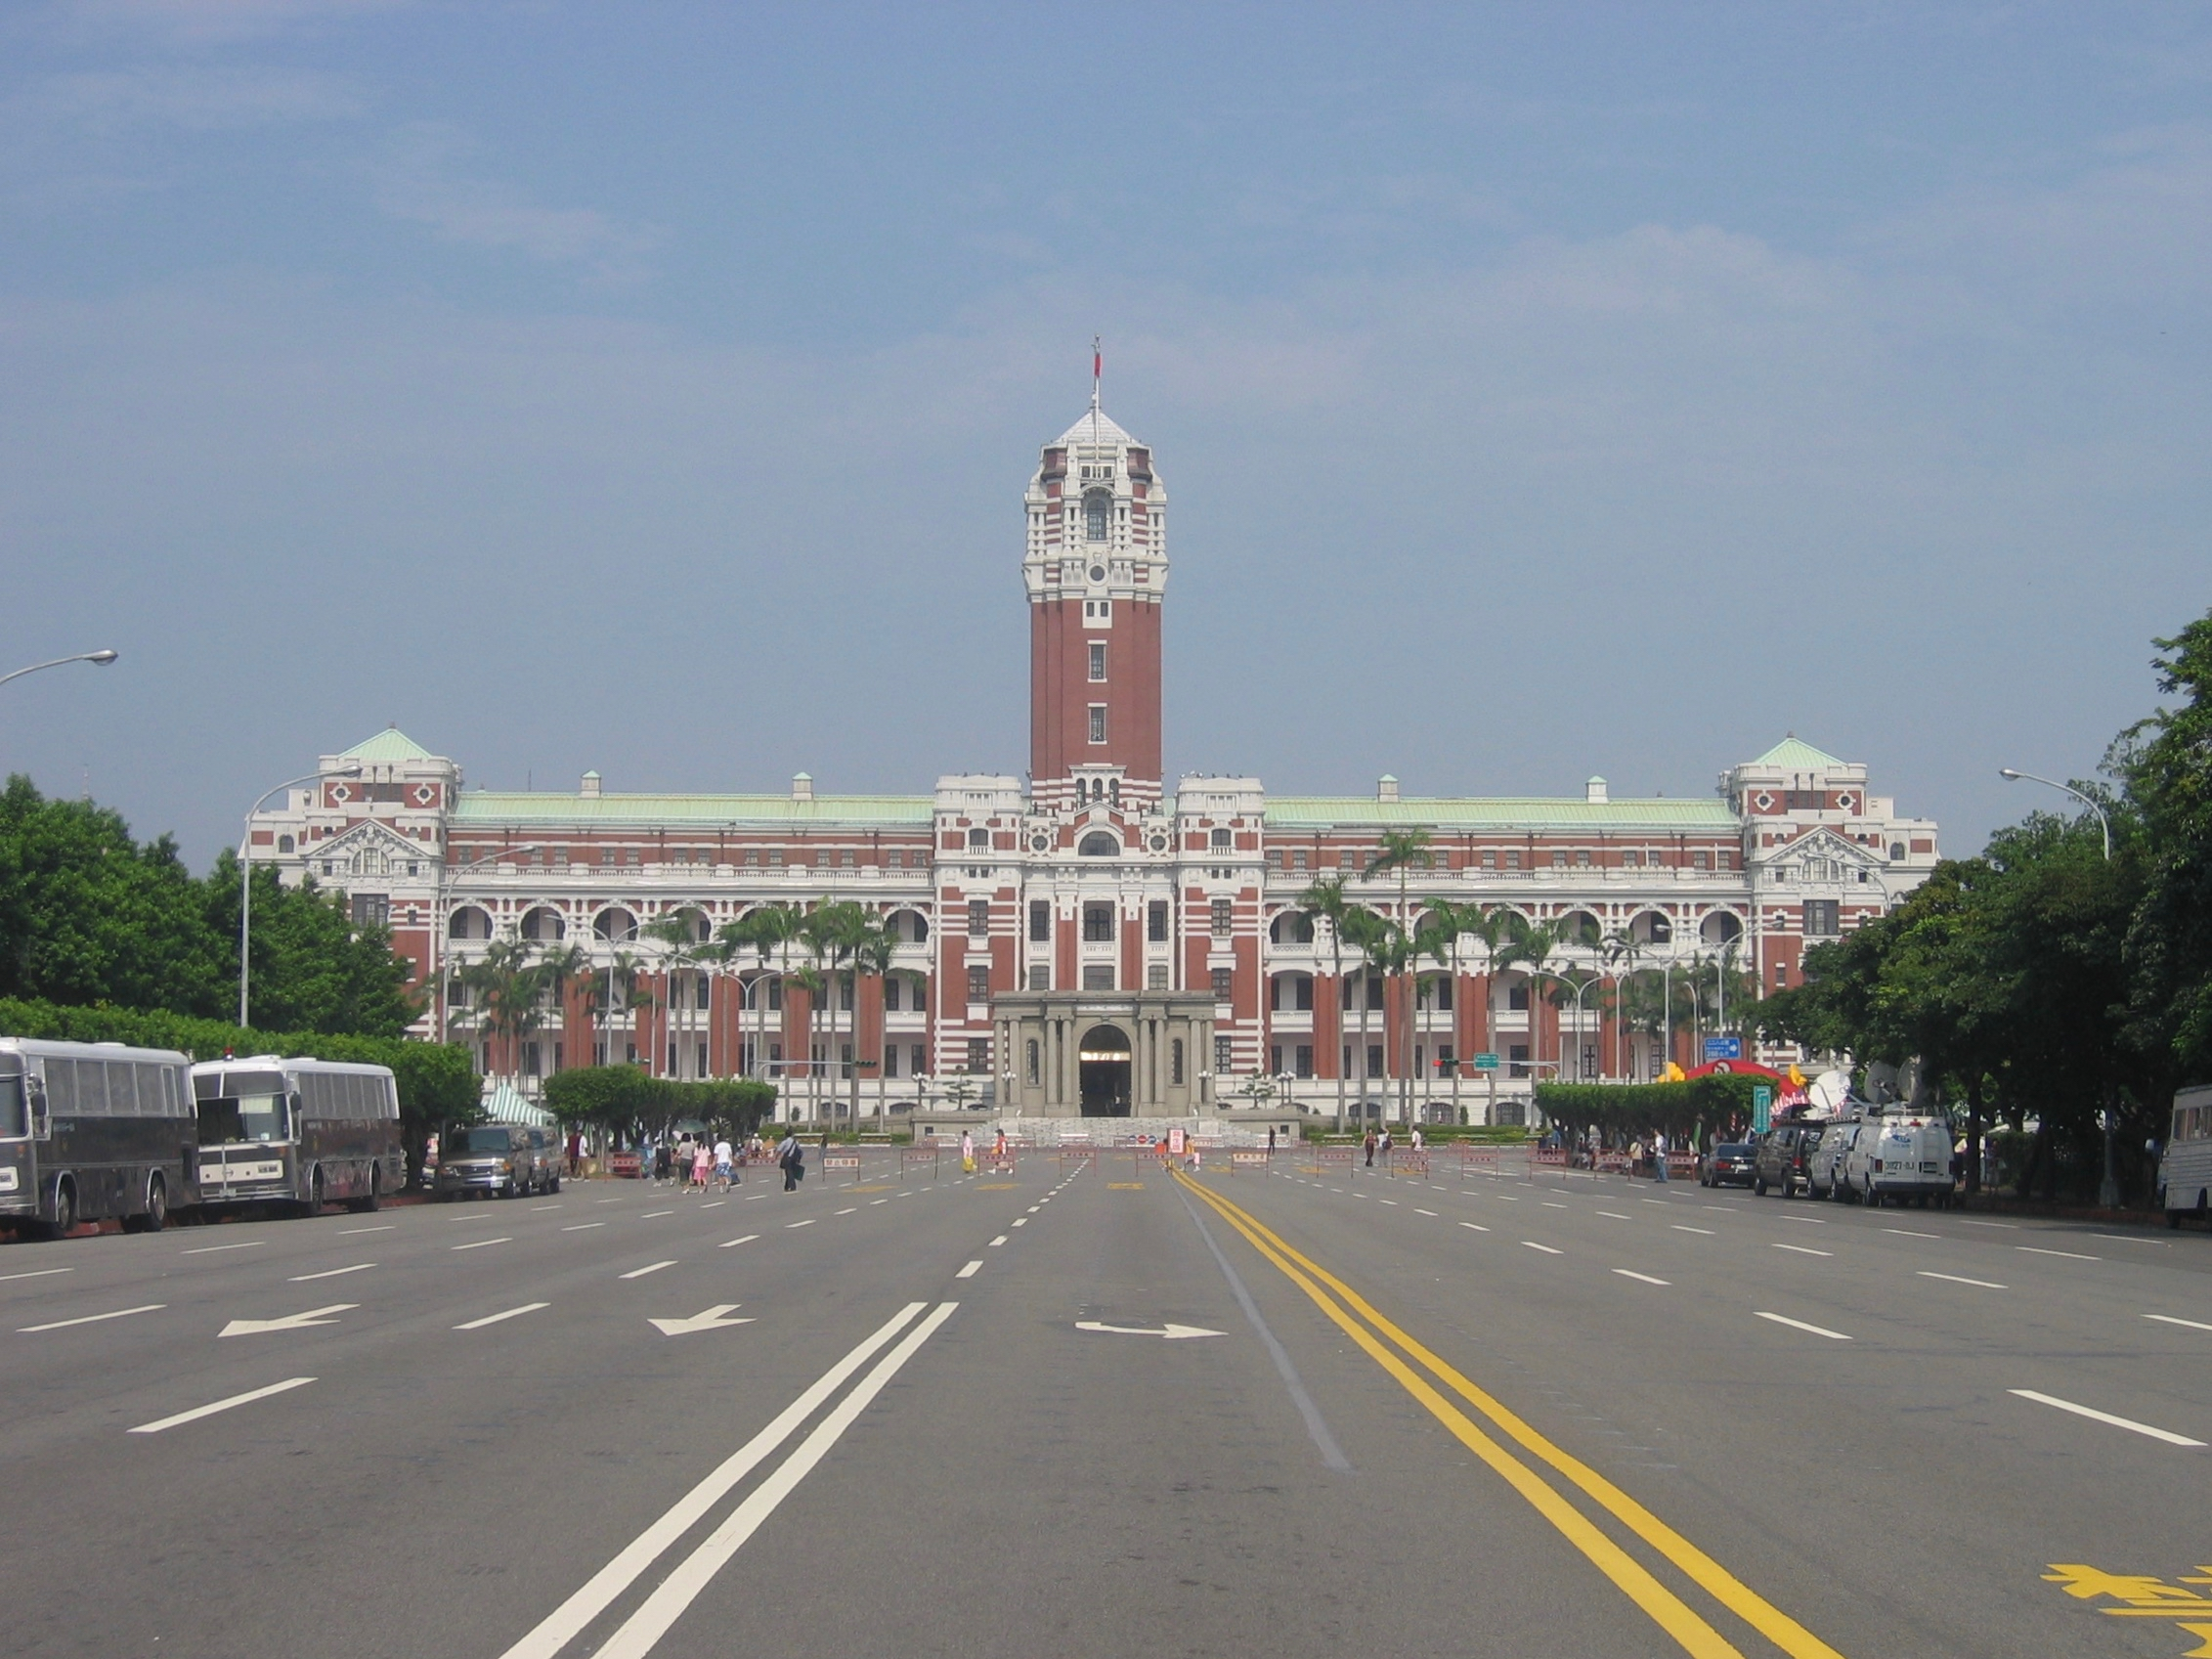 A tall and large building with a tower in its center. A large road surrounded by trees leads to it.